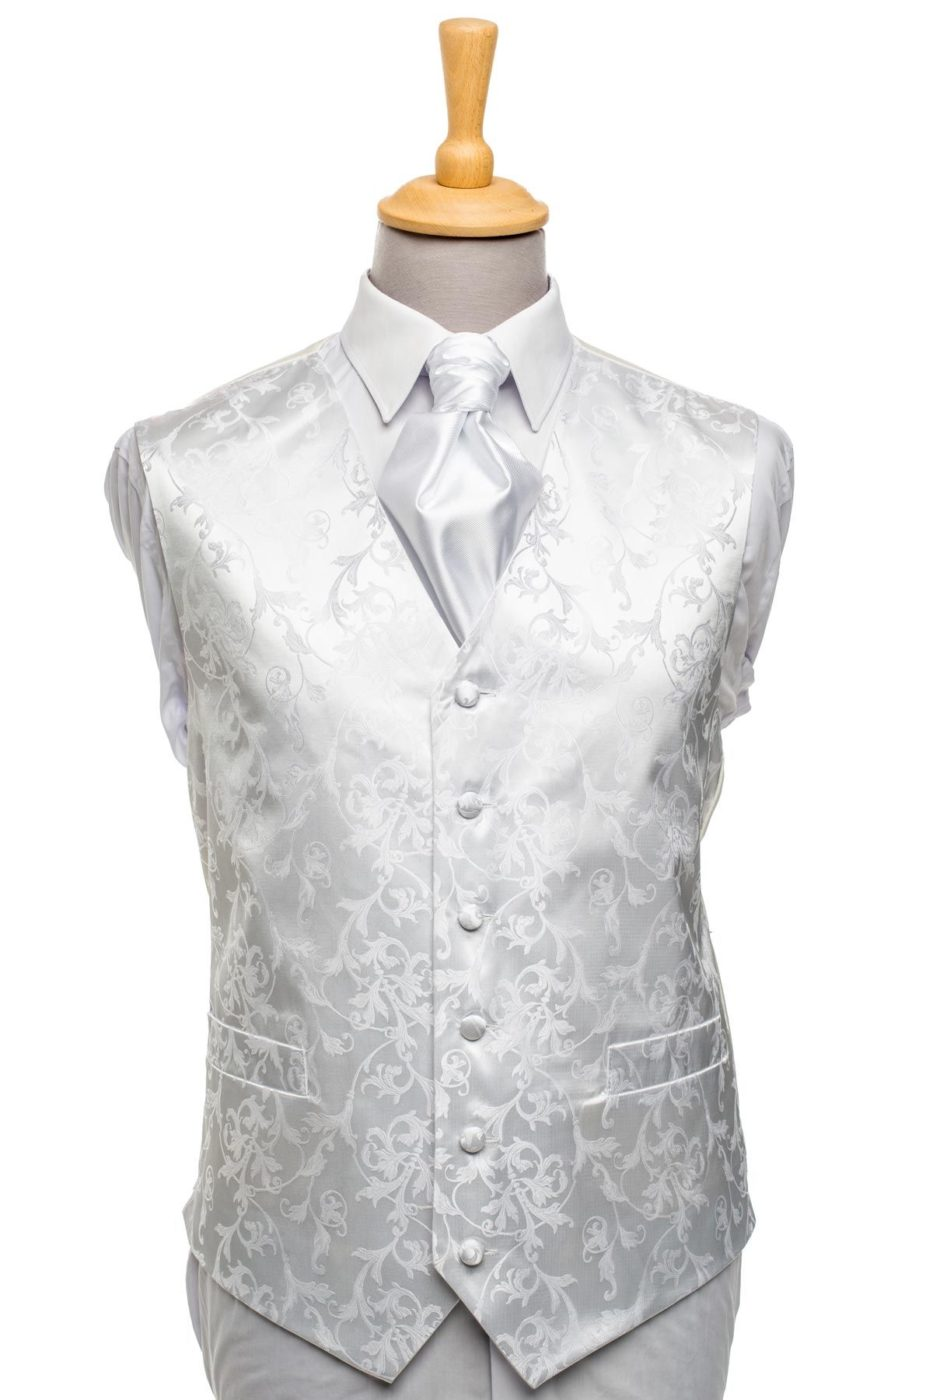 White Floral Ornament Waistcoat